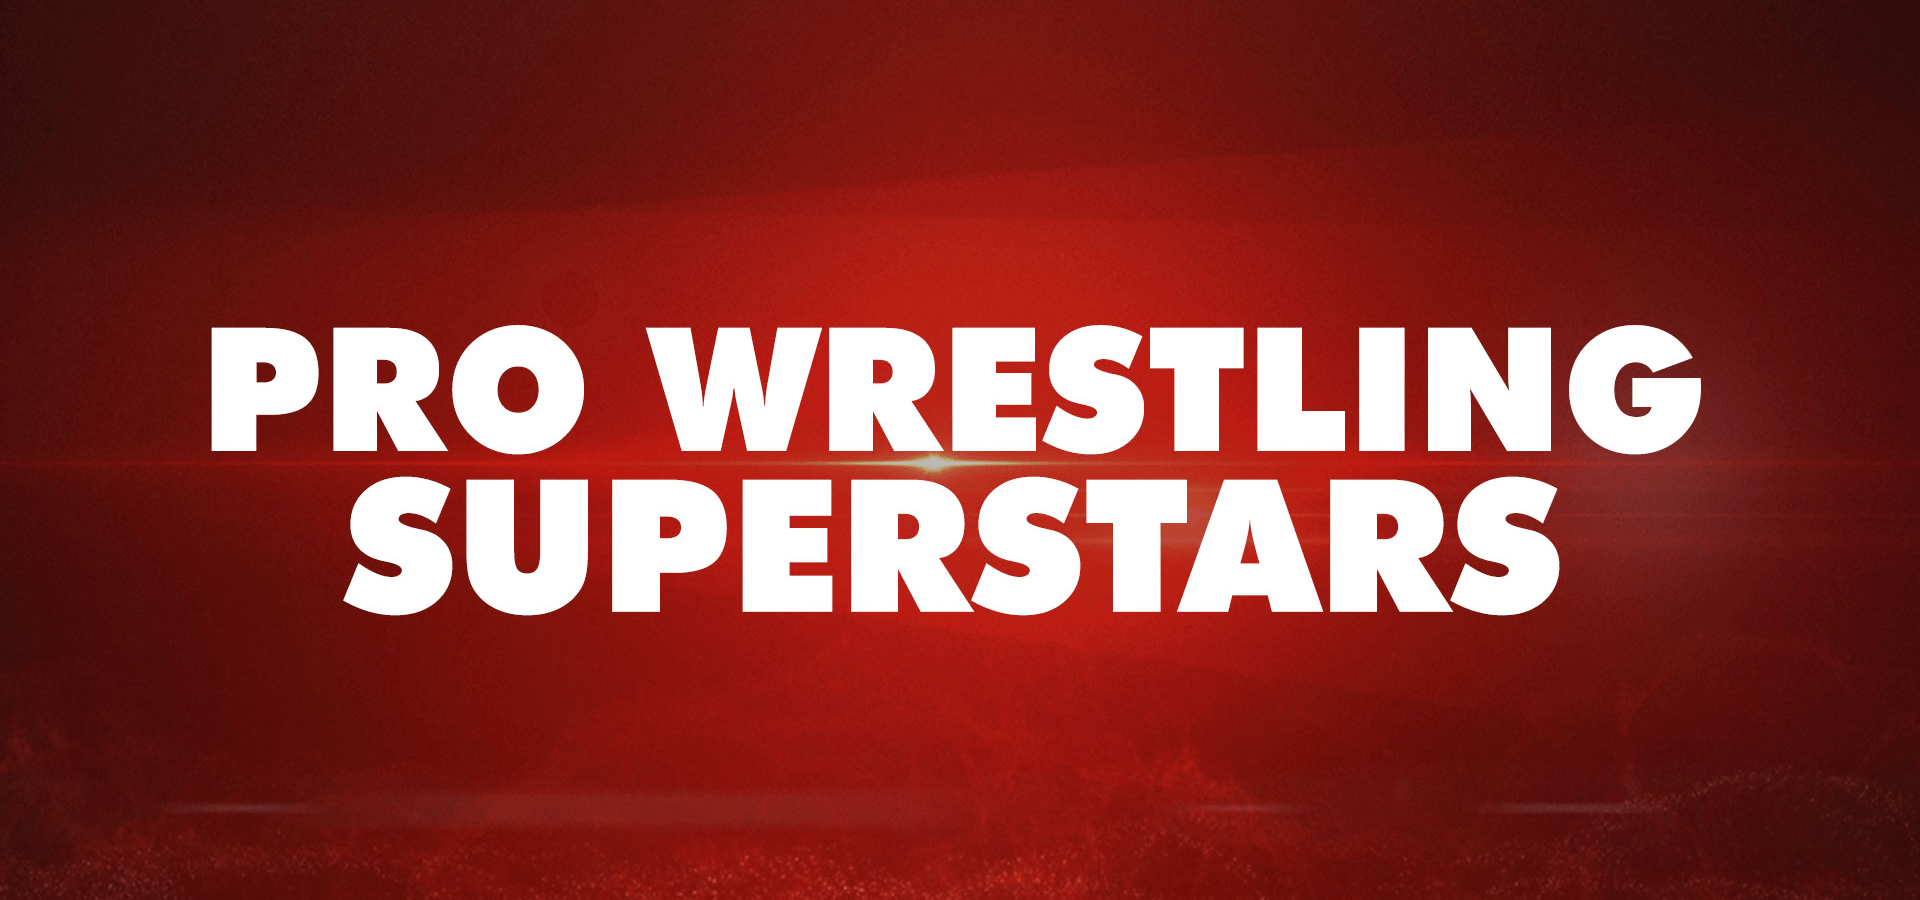 Pro Wrestling Superstars